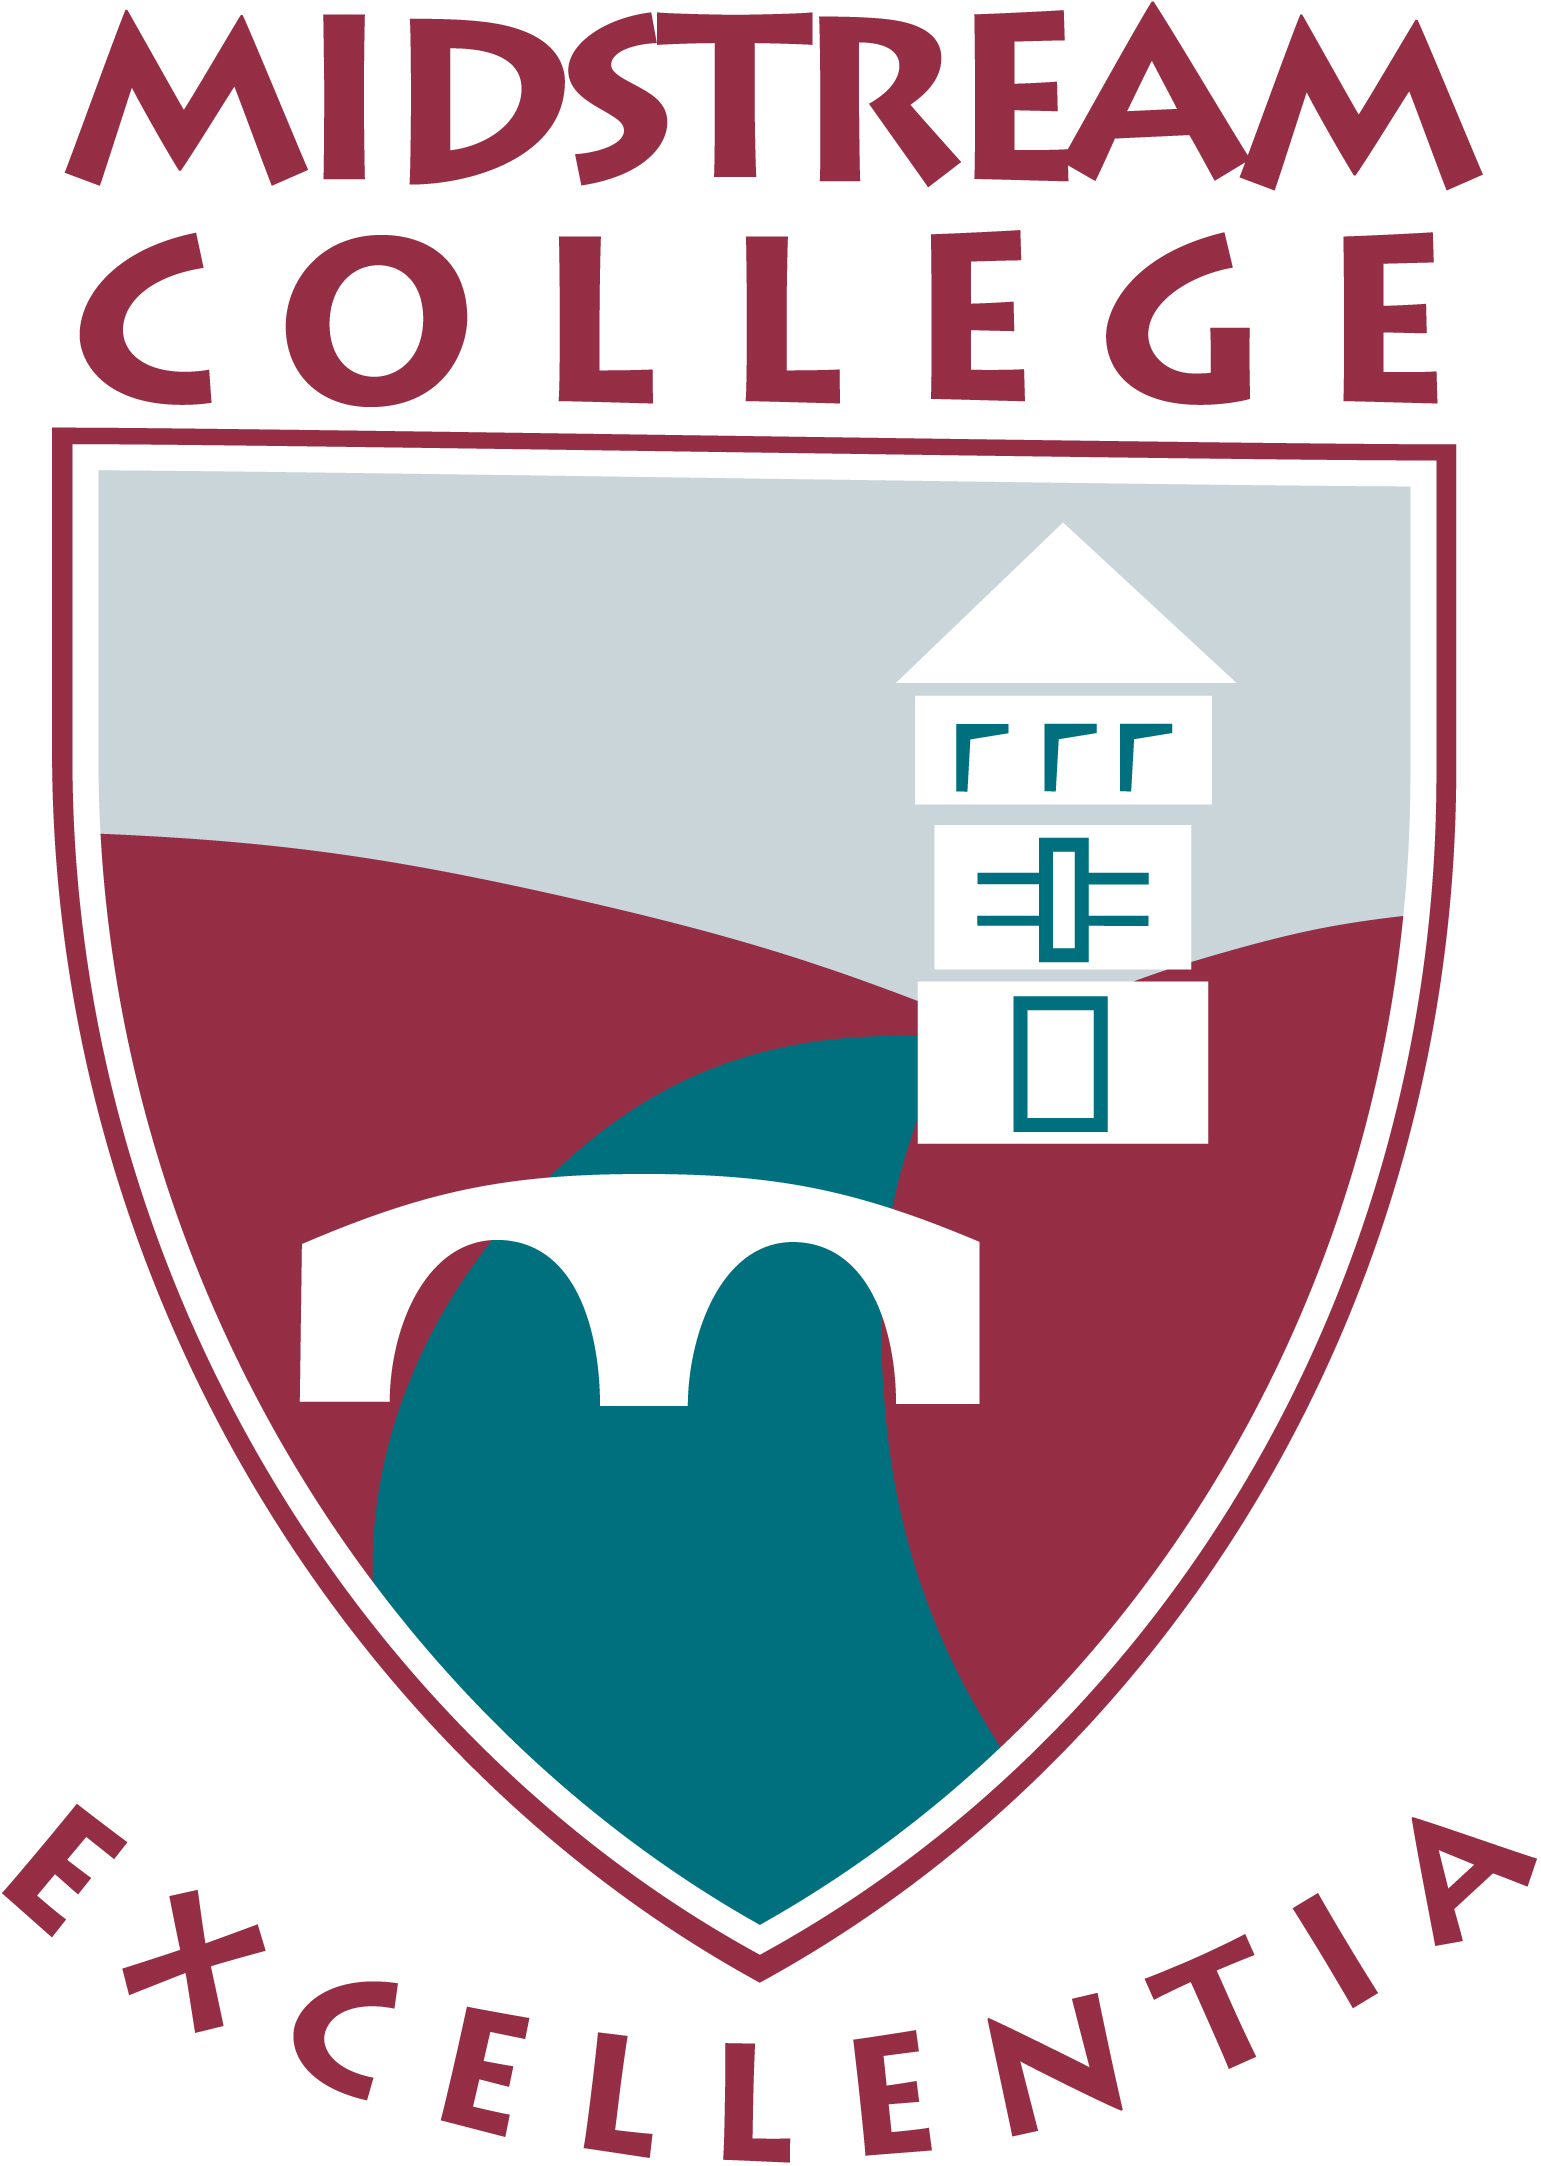 Midstream College Logo